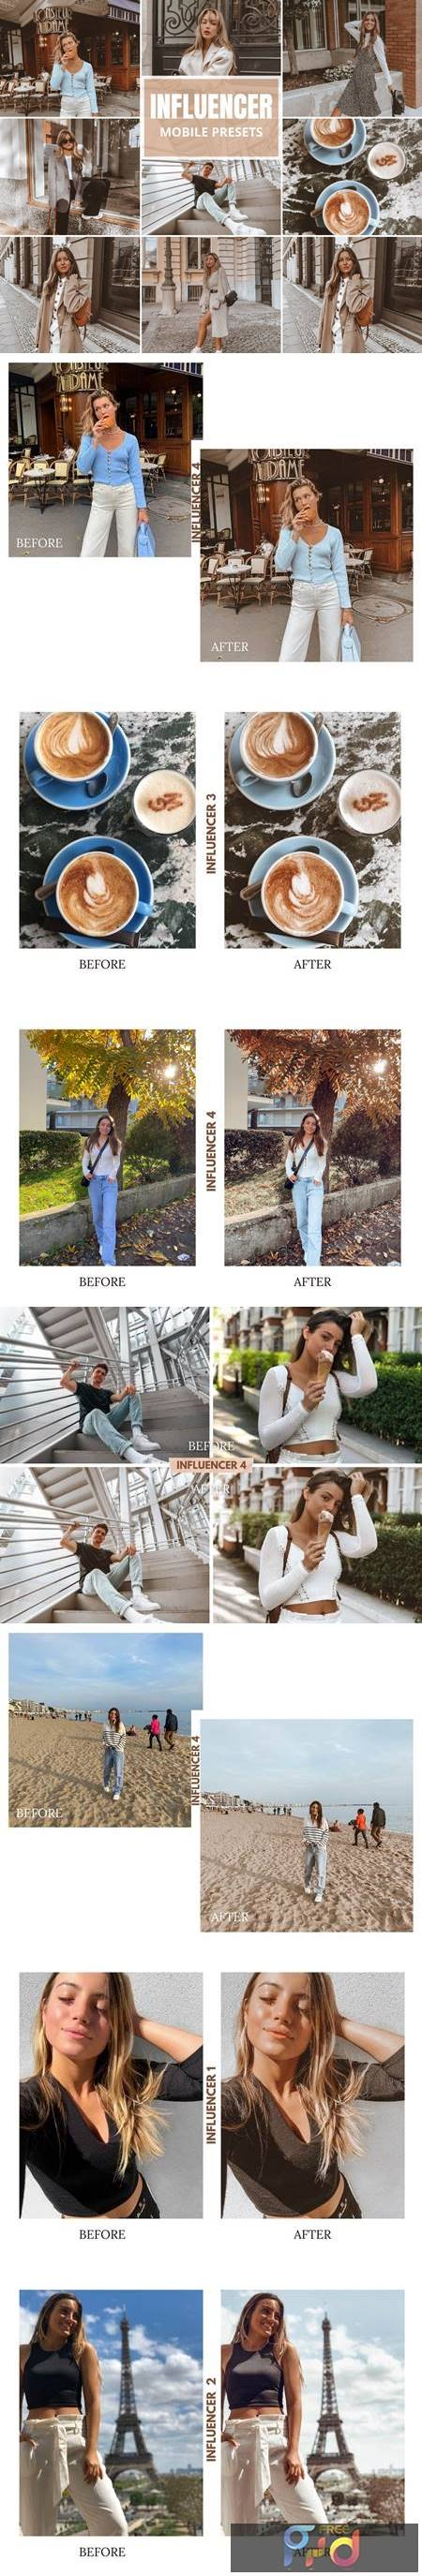 Influencer Mobile Lightroom Presets 5518539 1